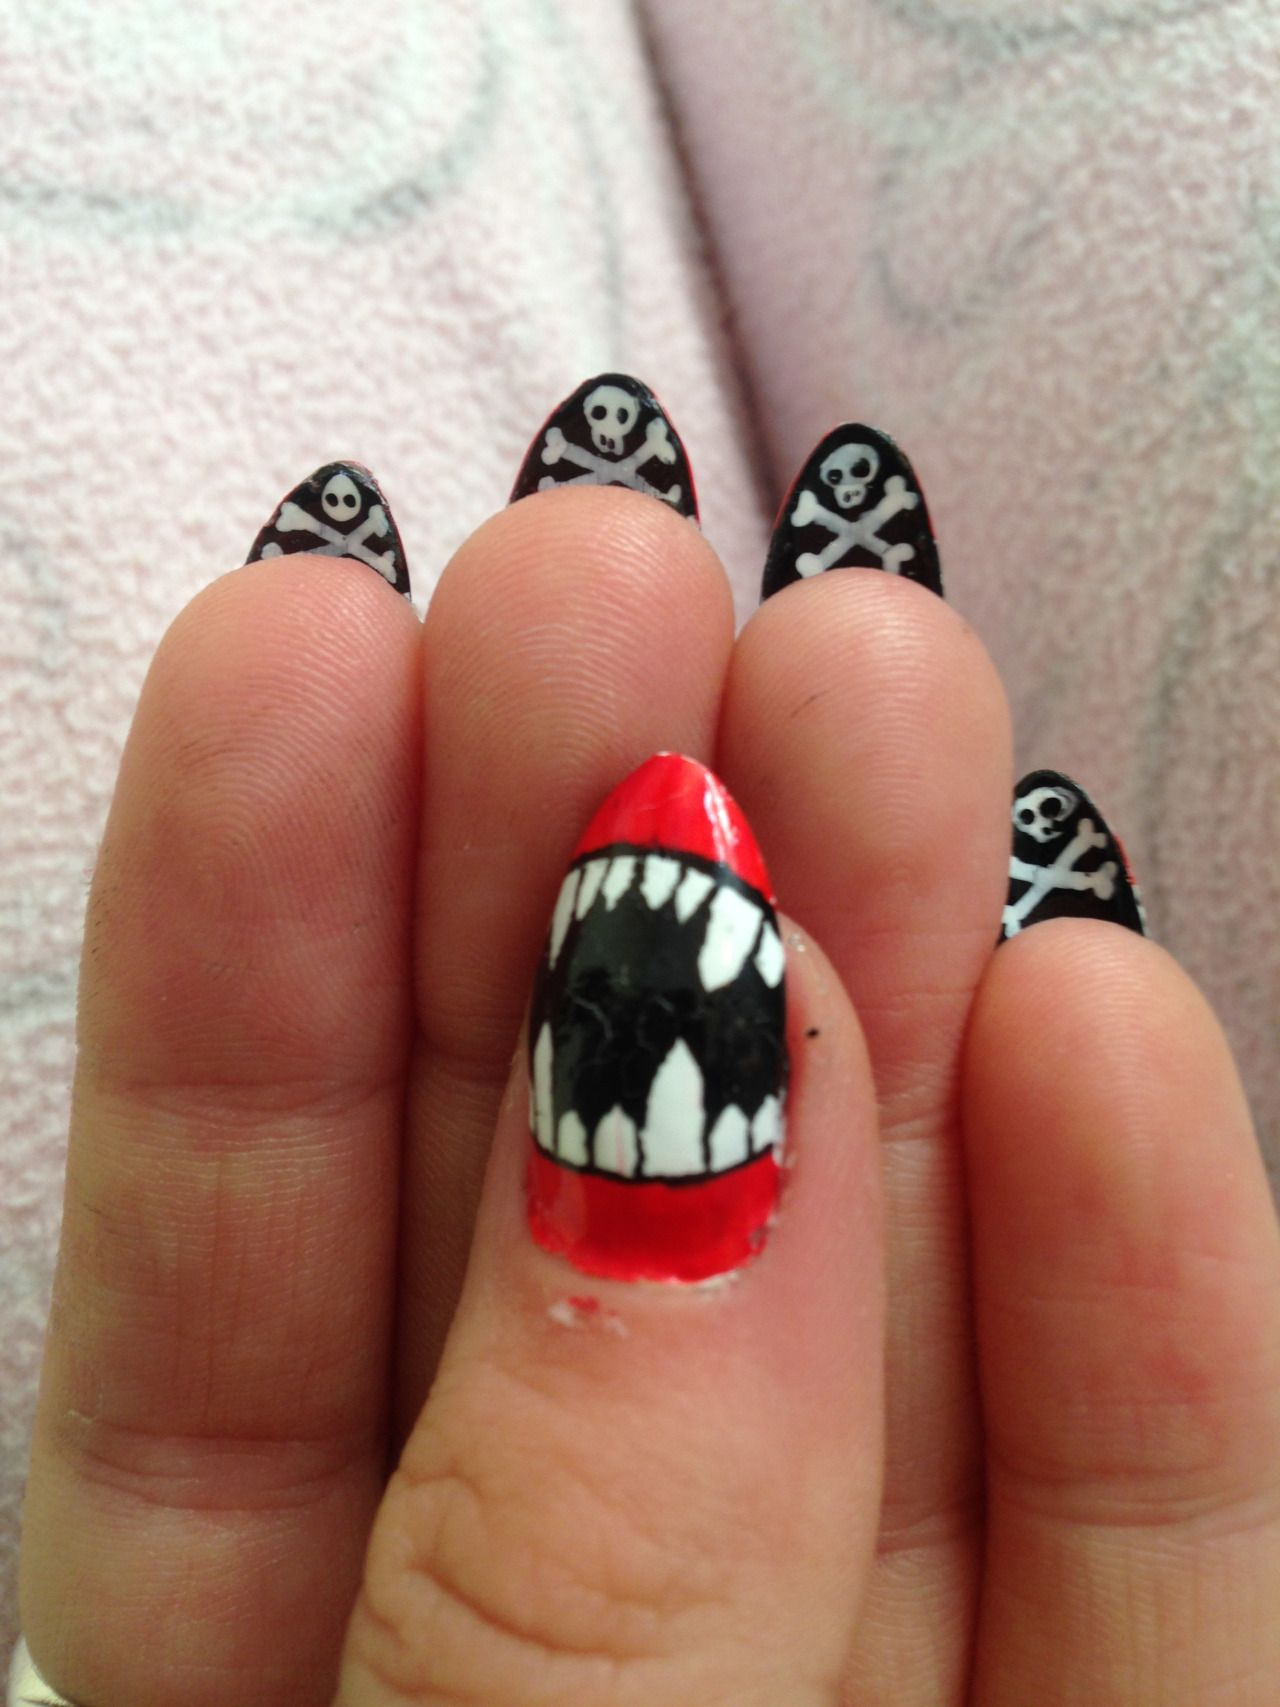 18 Spooky yet stylish nail art ideas inspired by Halloween ...